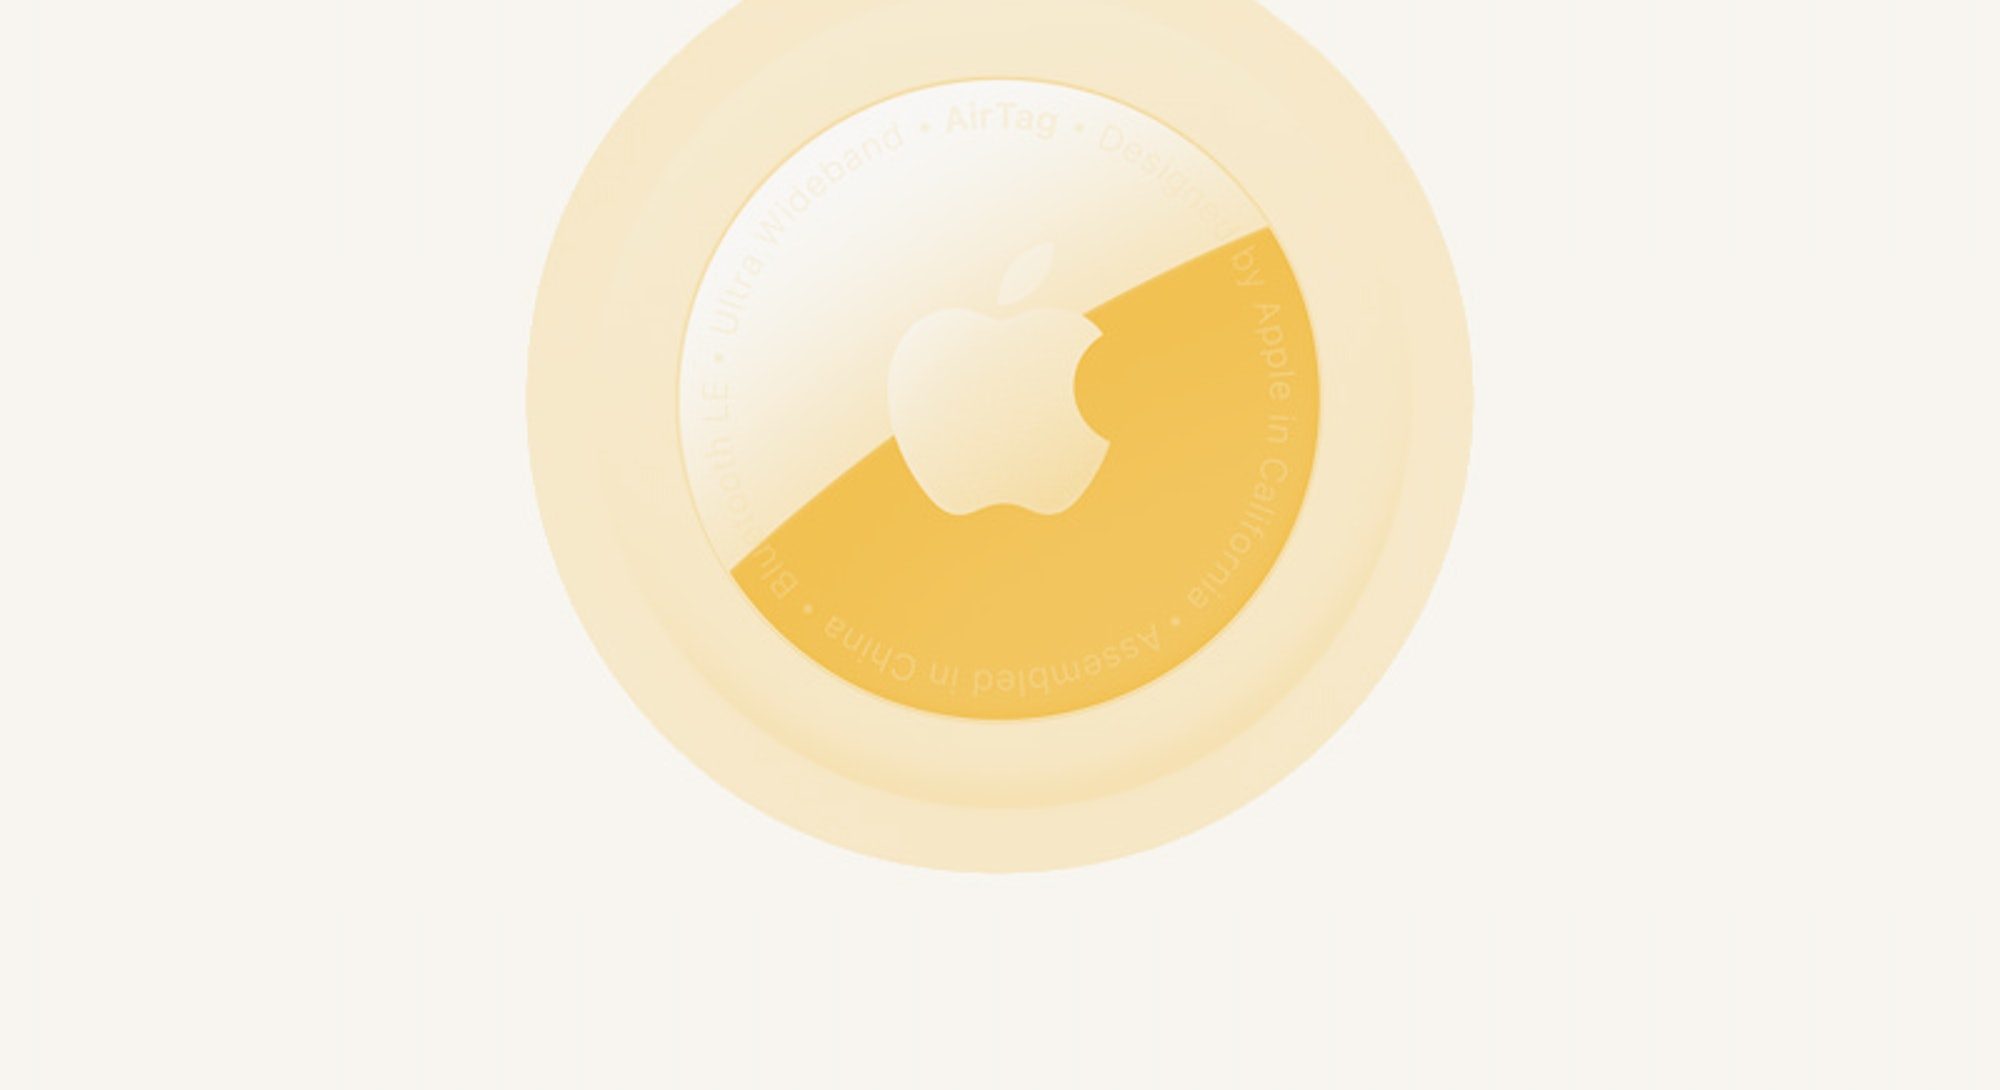 Apple AirTag tracker for iOS in yellow.